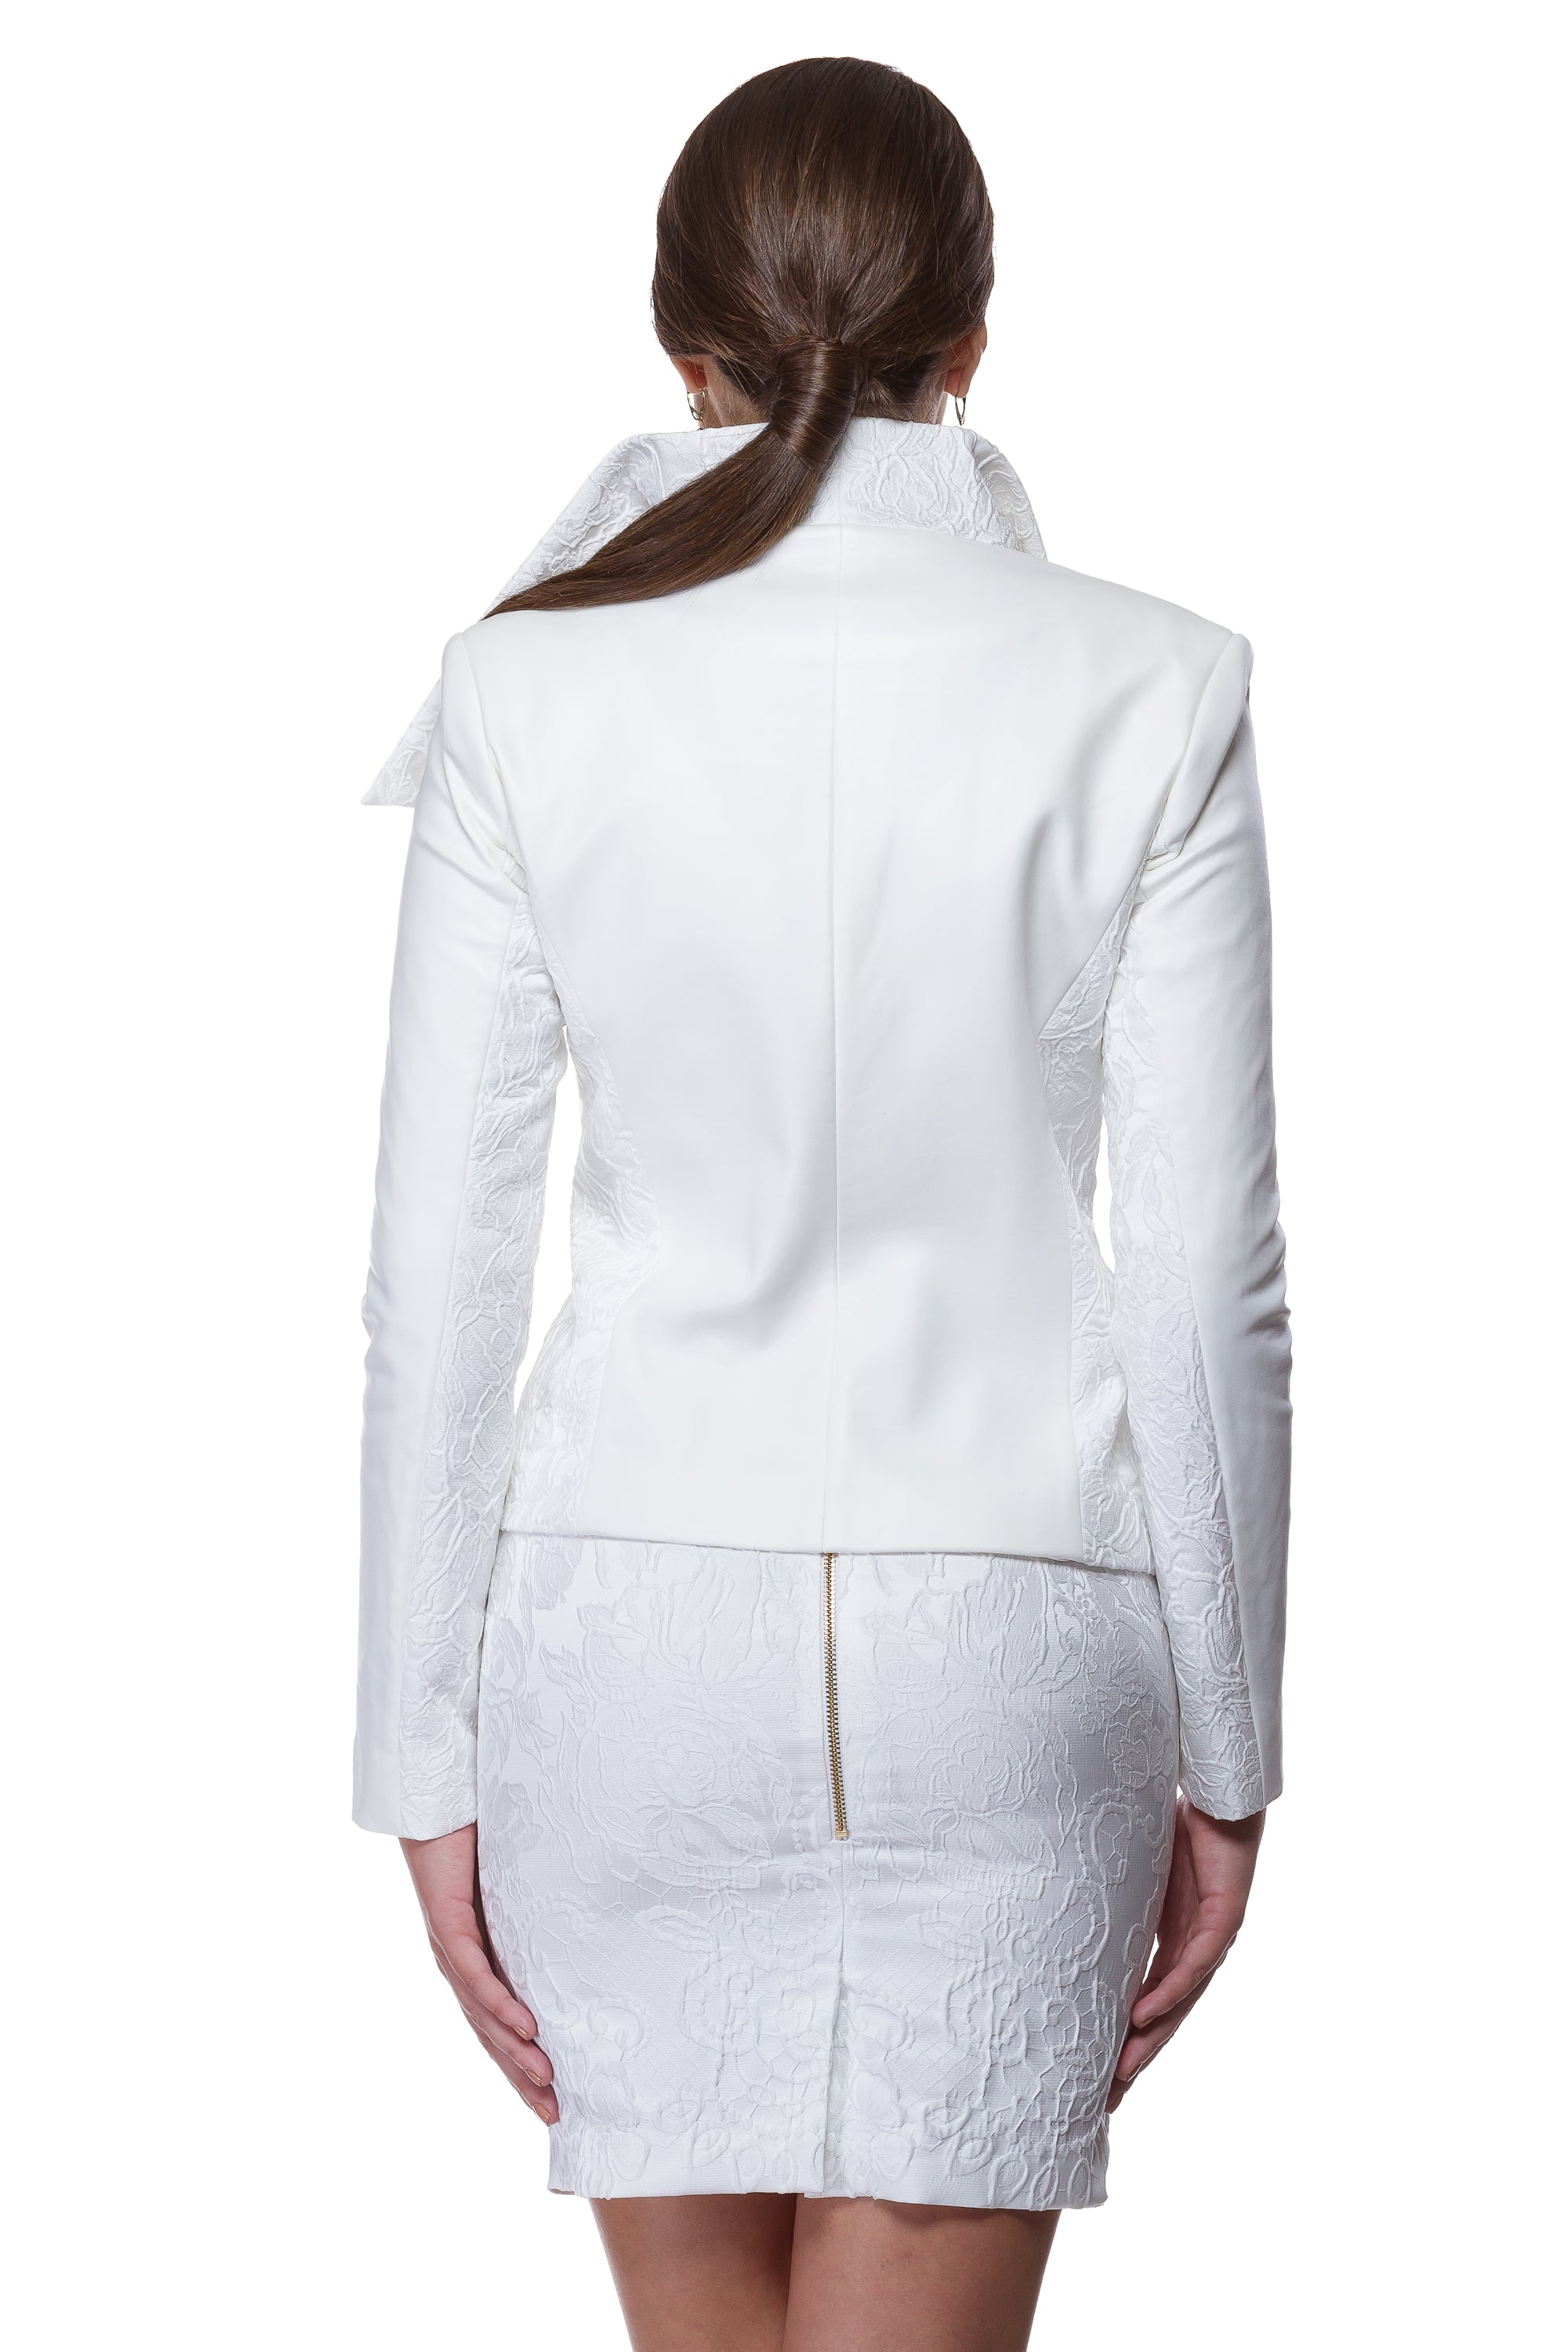 White jacquard jacket with floral elements WJK-0003